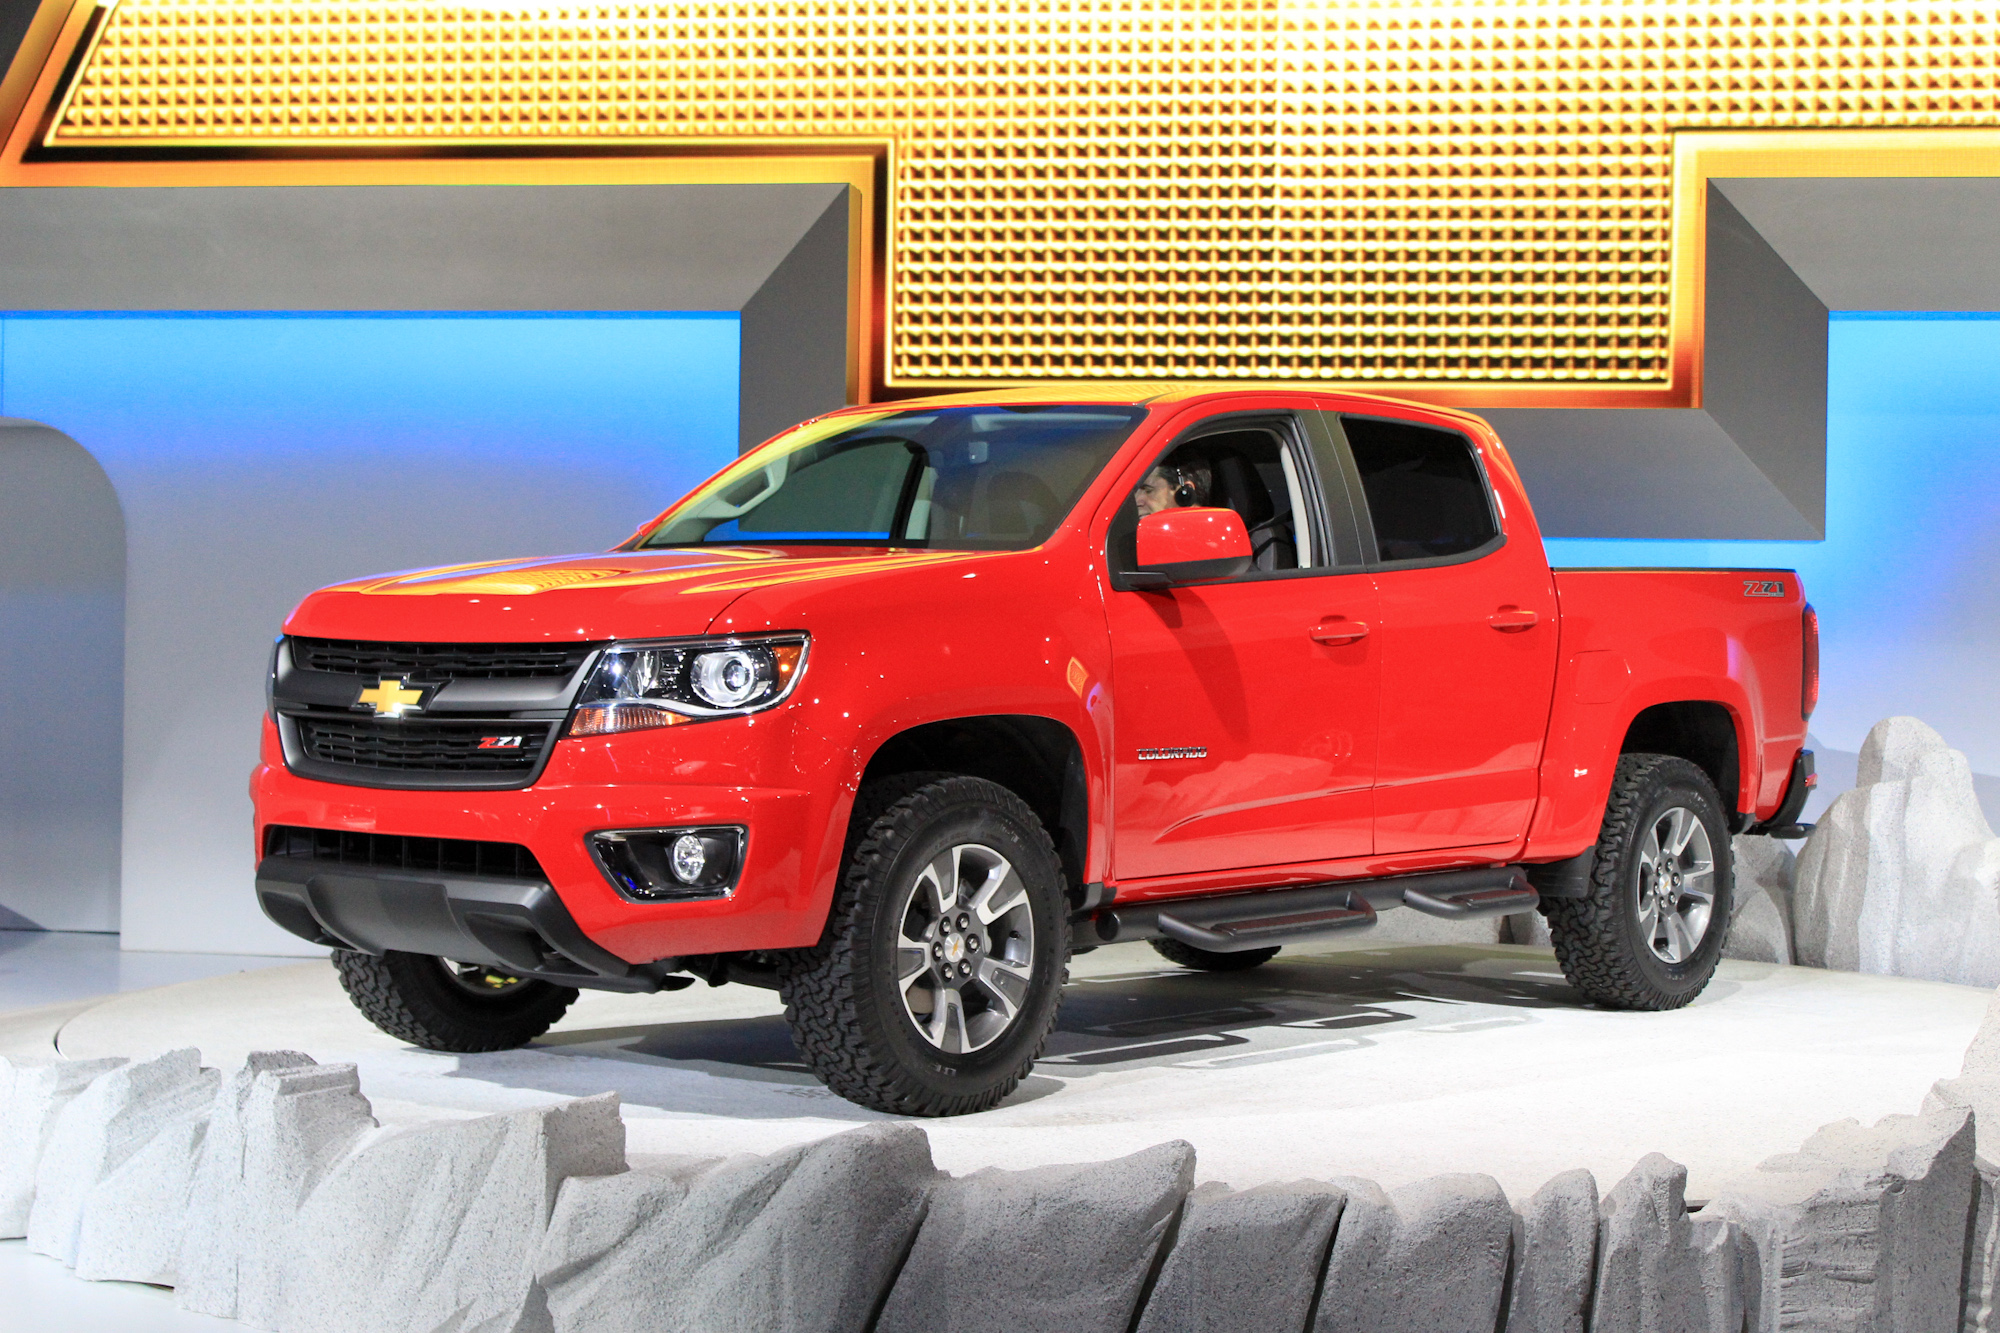 2015 chevy colorado mid size pickup to offer diesel option. Black Bedroom Furniture Sets. Home Design Ideas